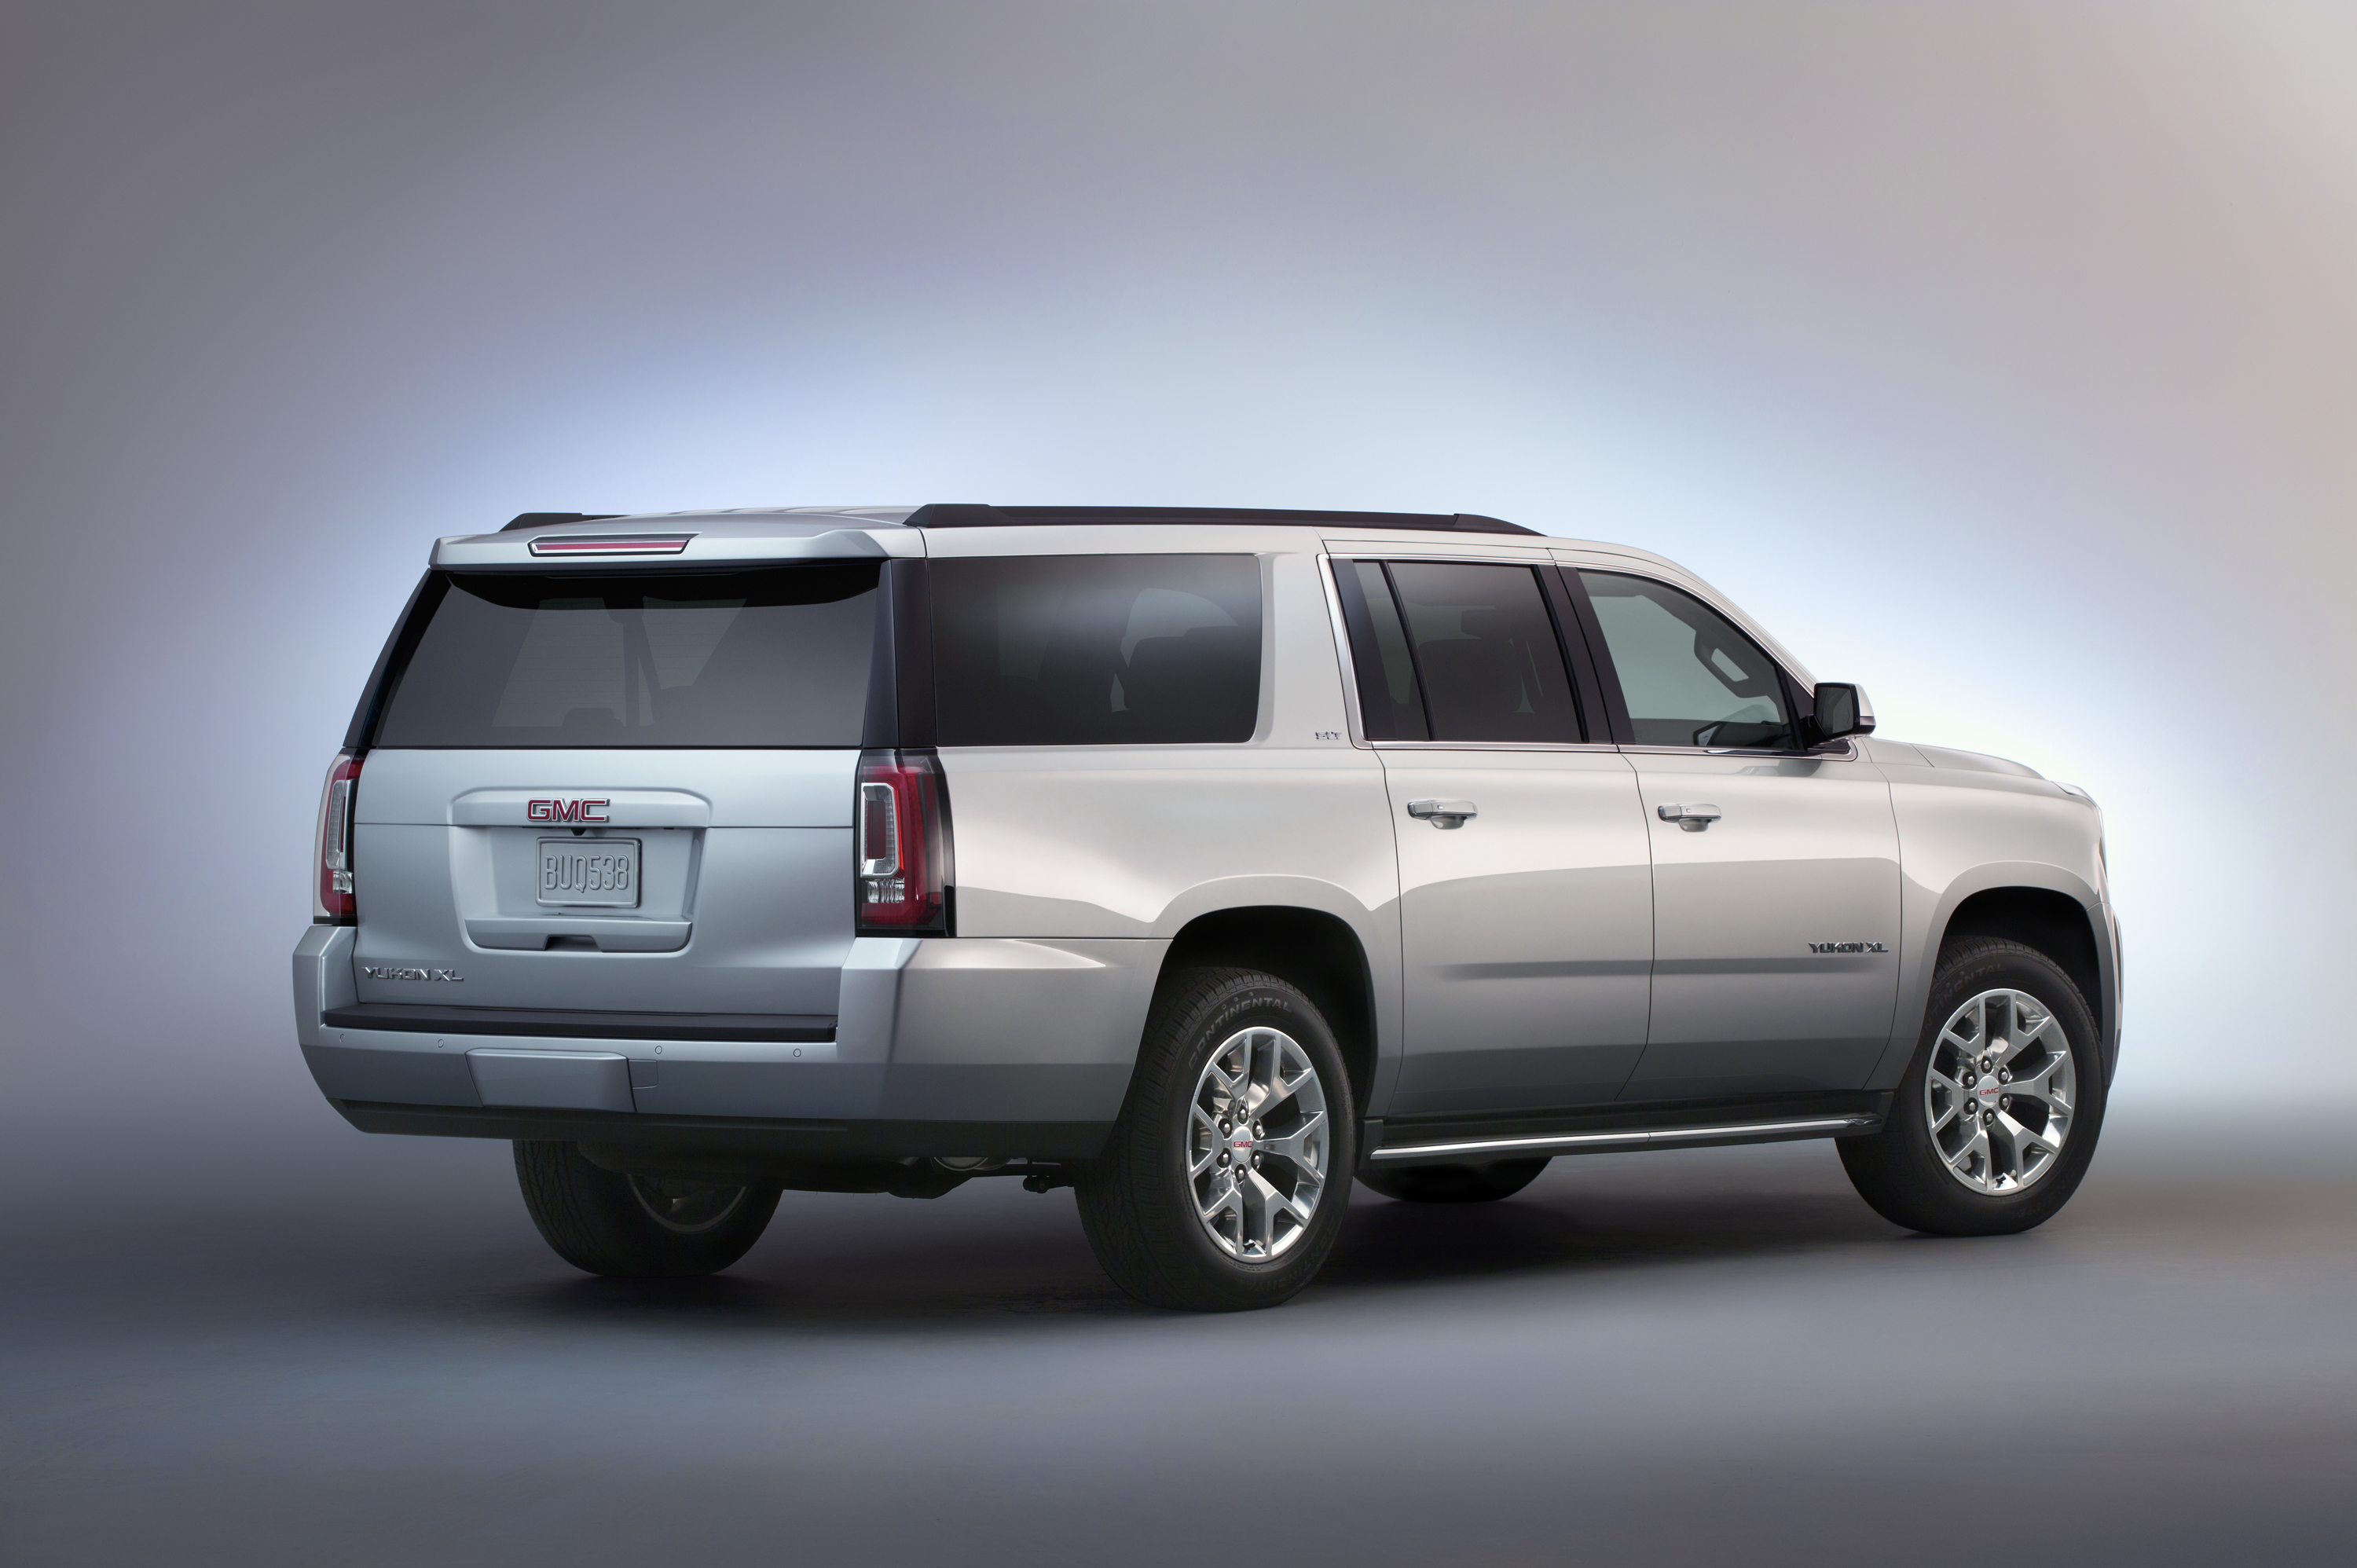 yukon en states vehicles media denali us hybrid pressroom united gmc yukonhybrid